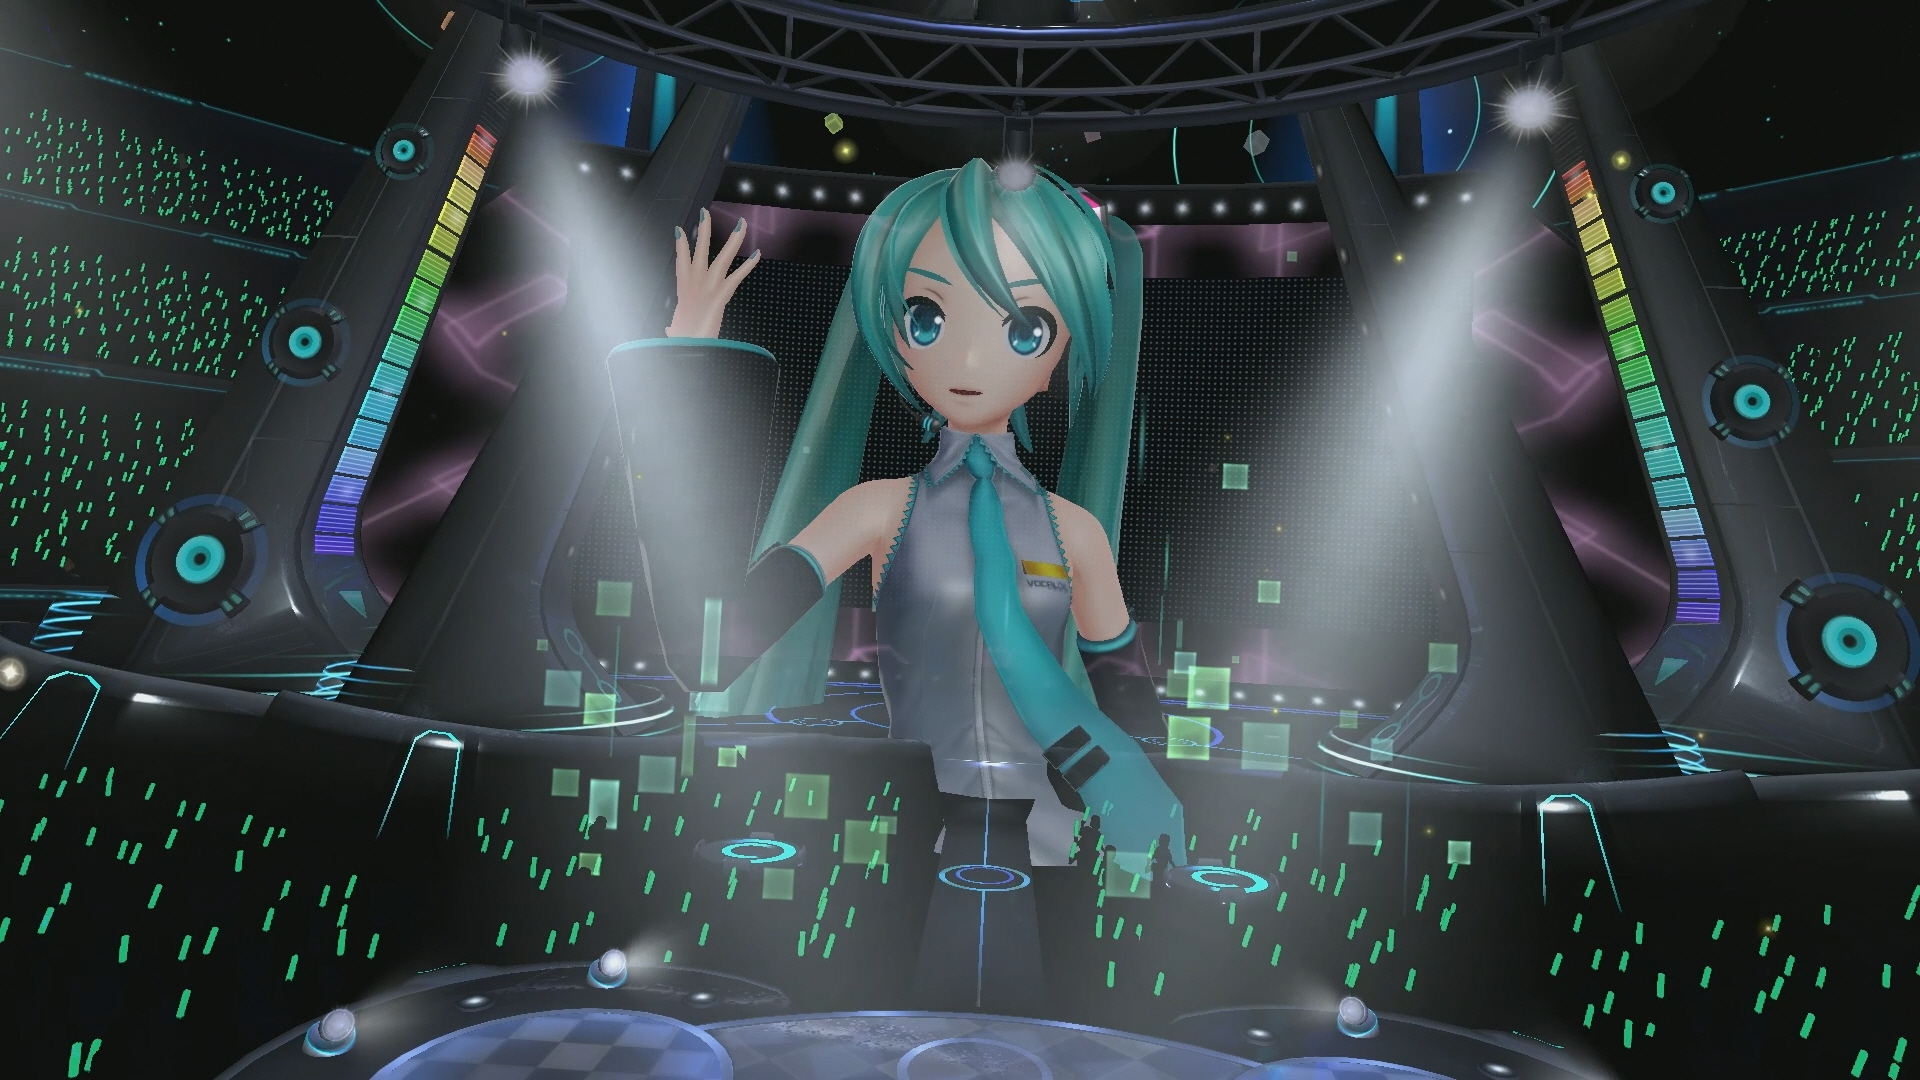 Hatsune Miku Vr Future Live Launches 13th October Playstation